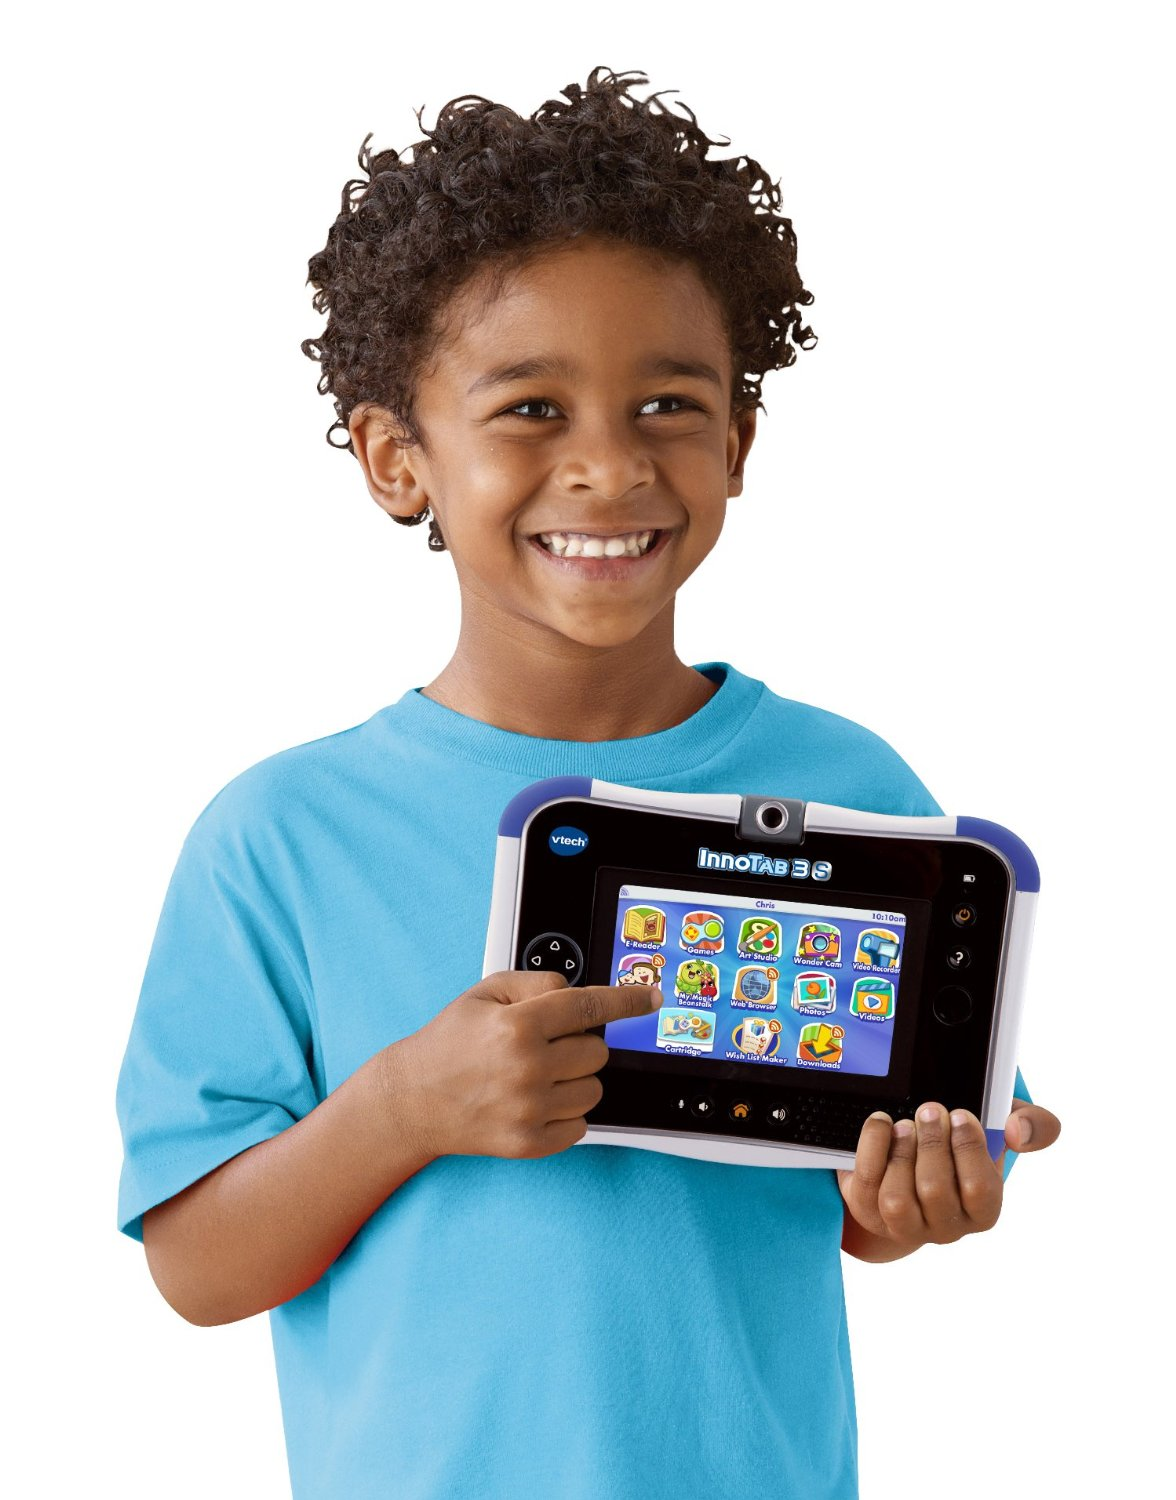 10 Ipad Games For Kids Aged 7 11